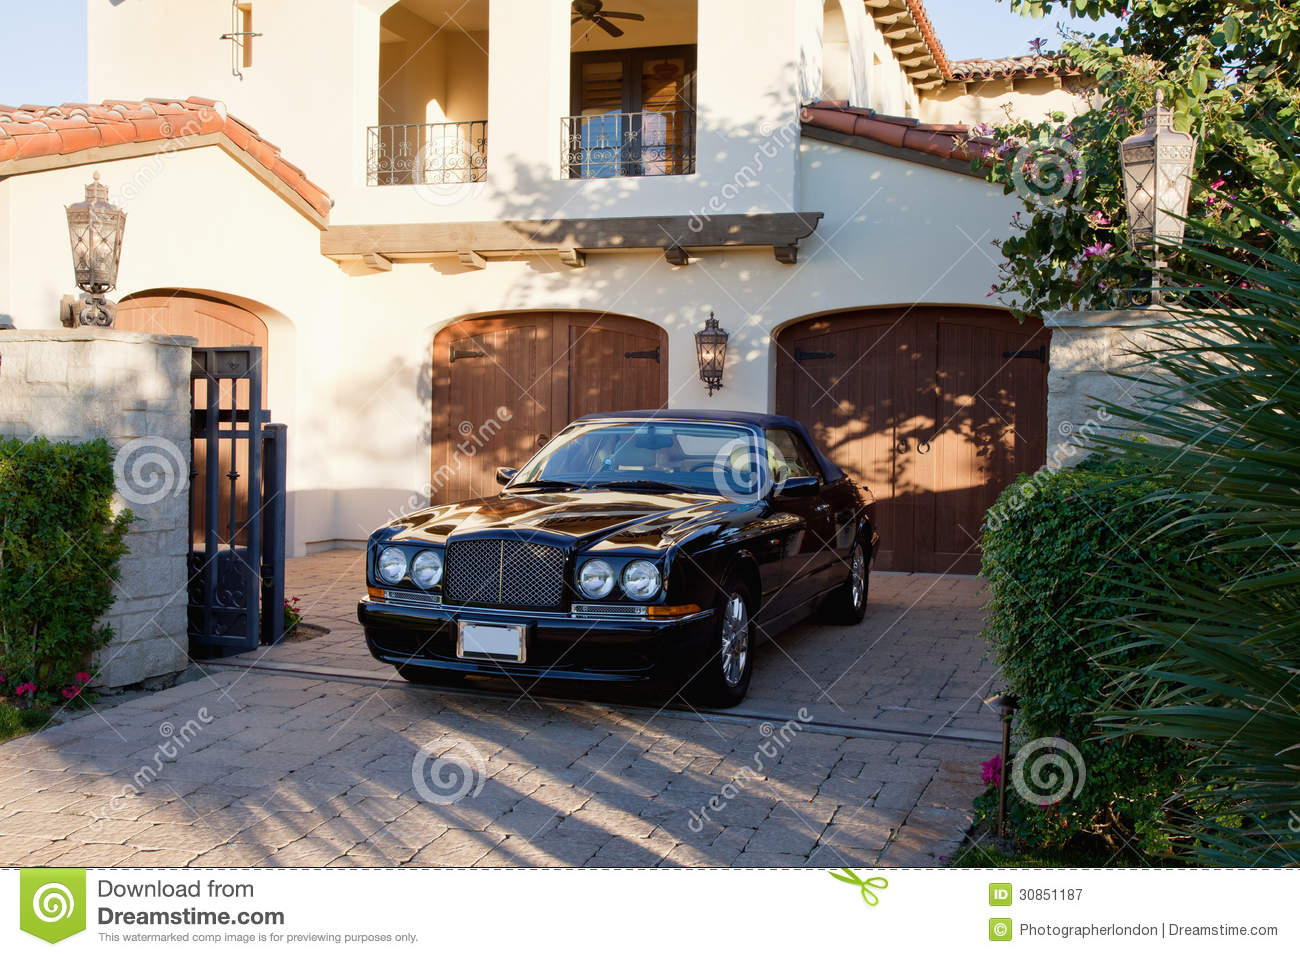 Luxurious Car Parked In Entrance Gate Of House Royalty